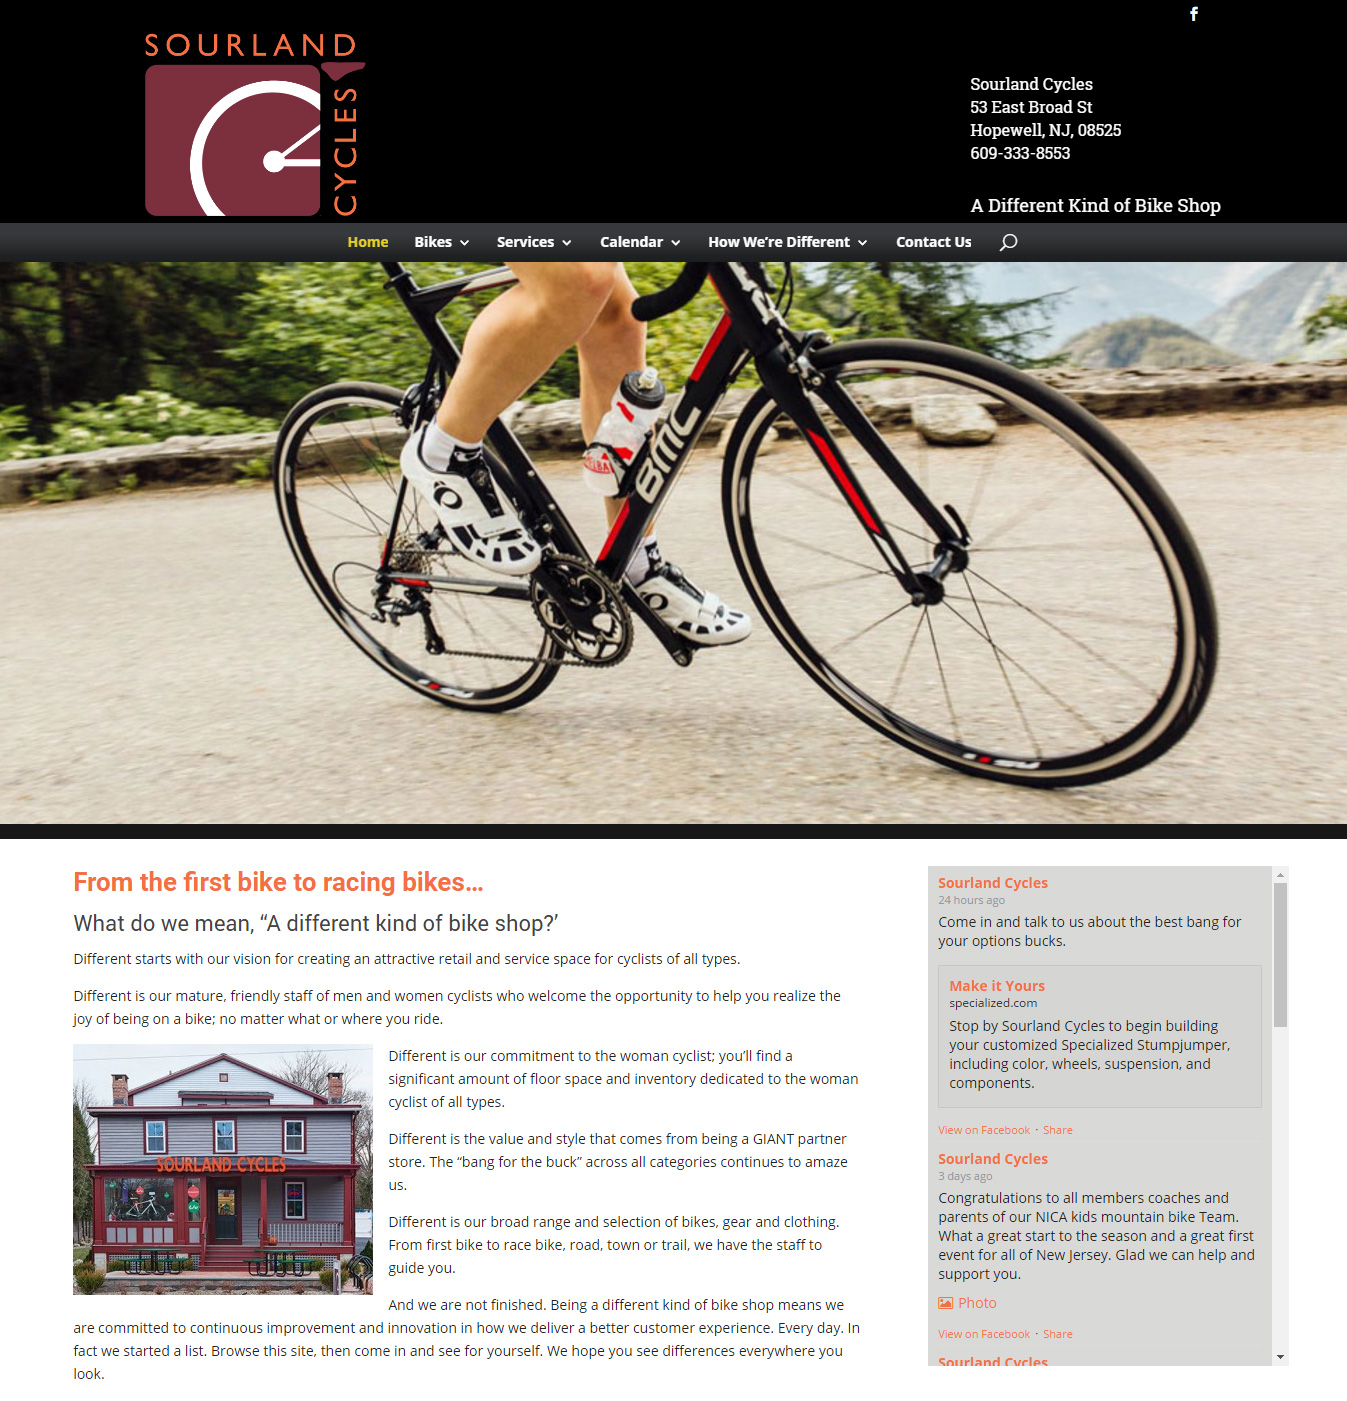 Sourland Cycles